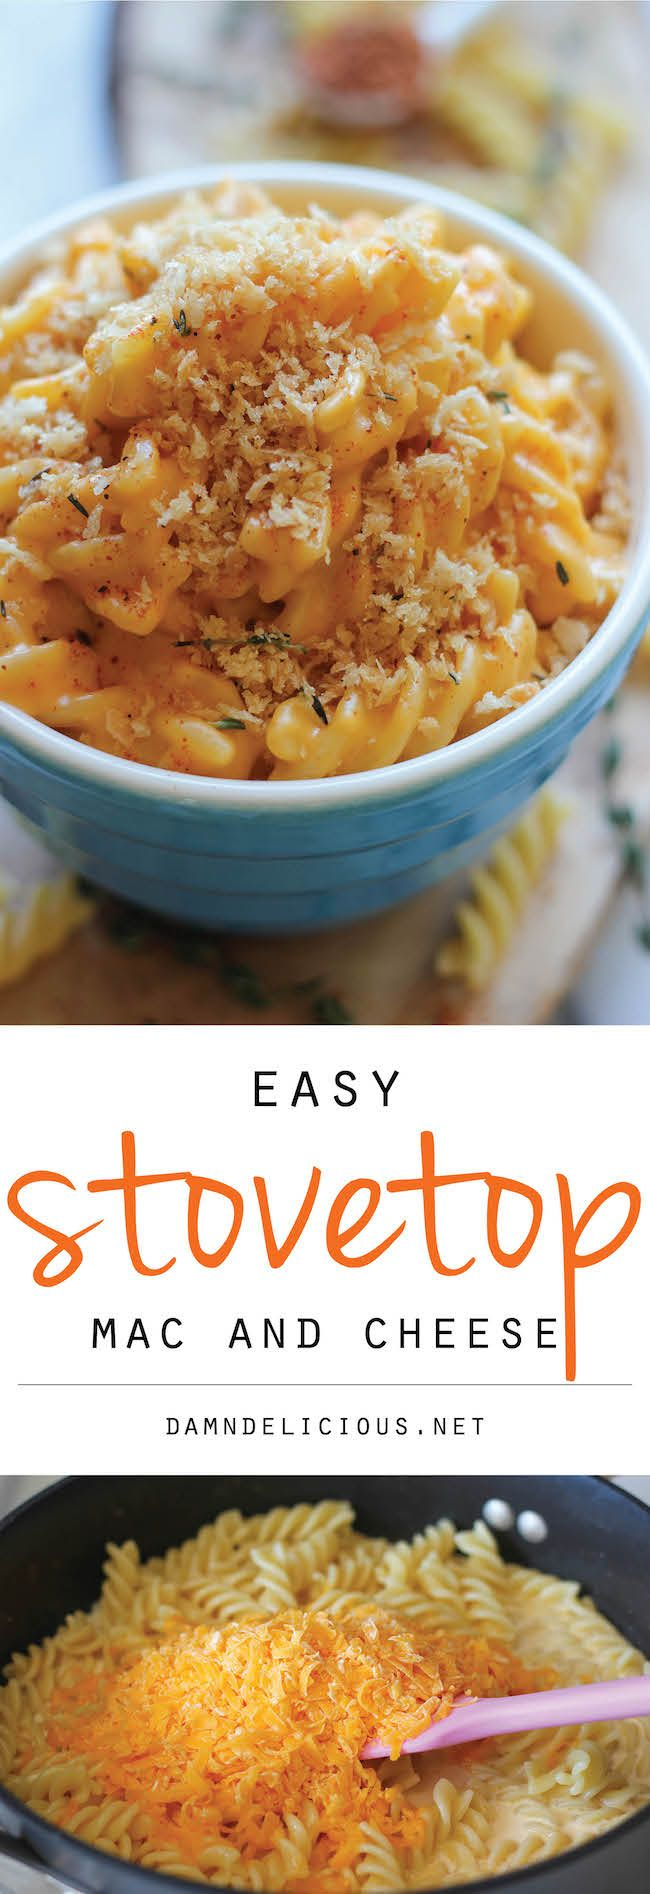 Stovetop Mac and Cheese - A quick and easy, no-fuss mac and cheese ...